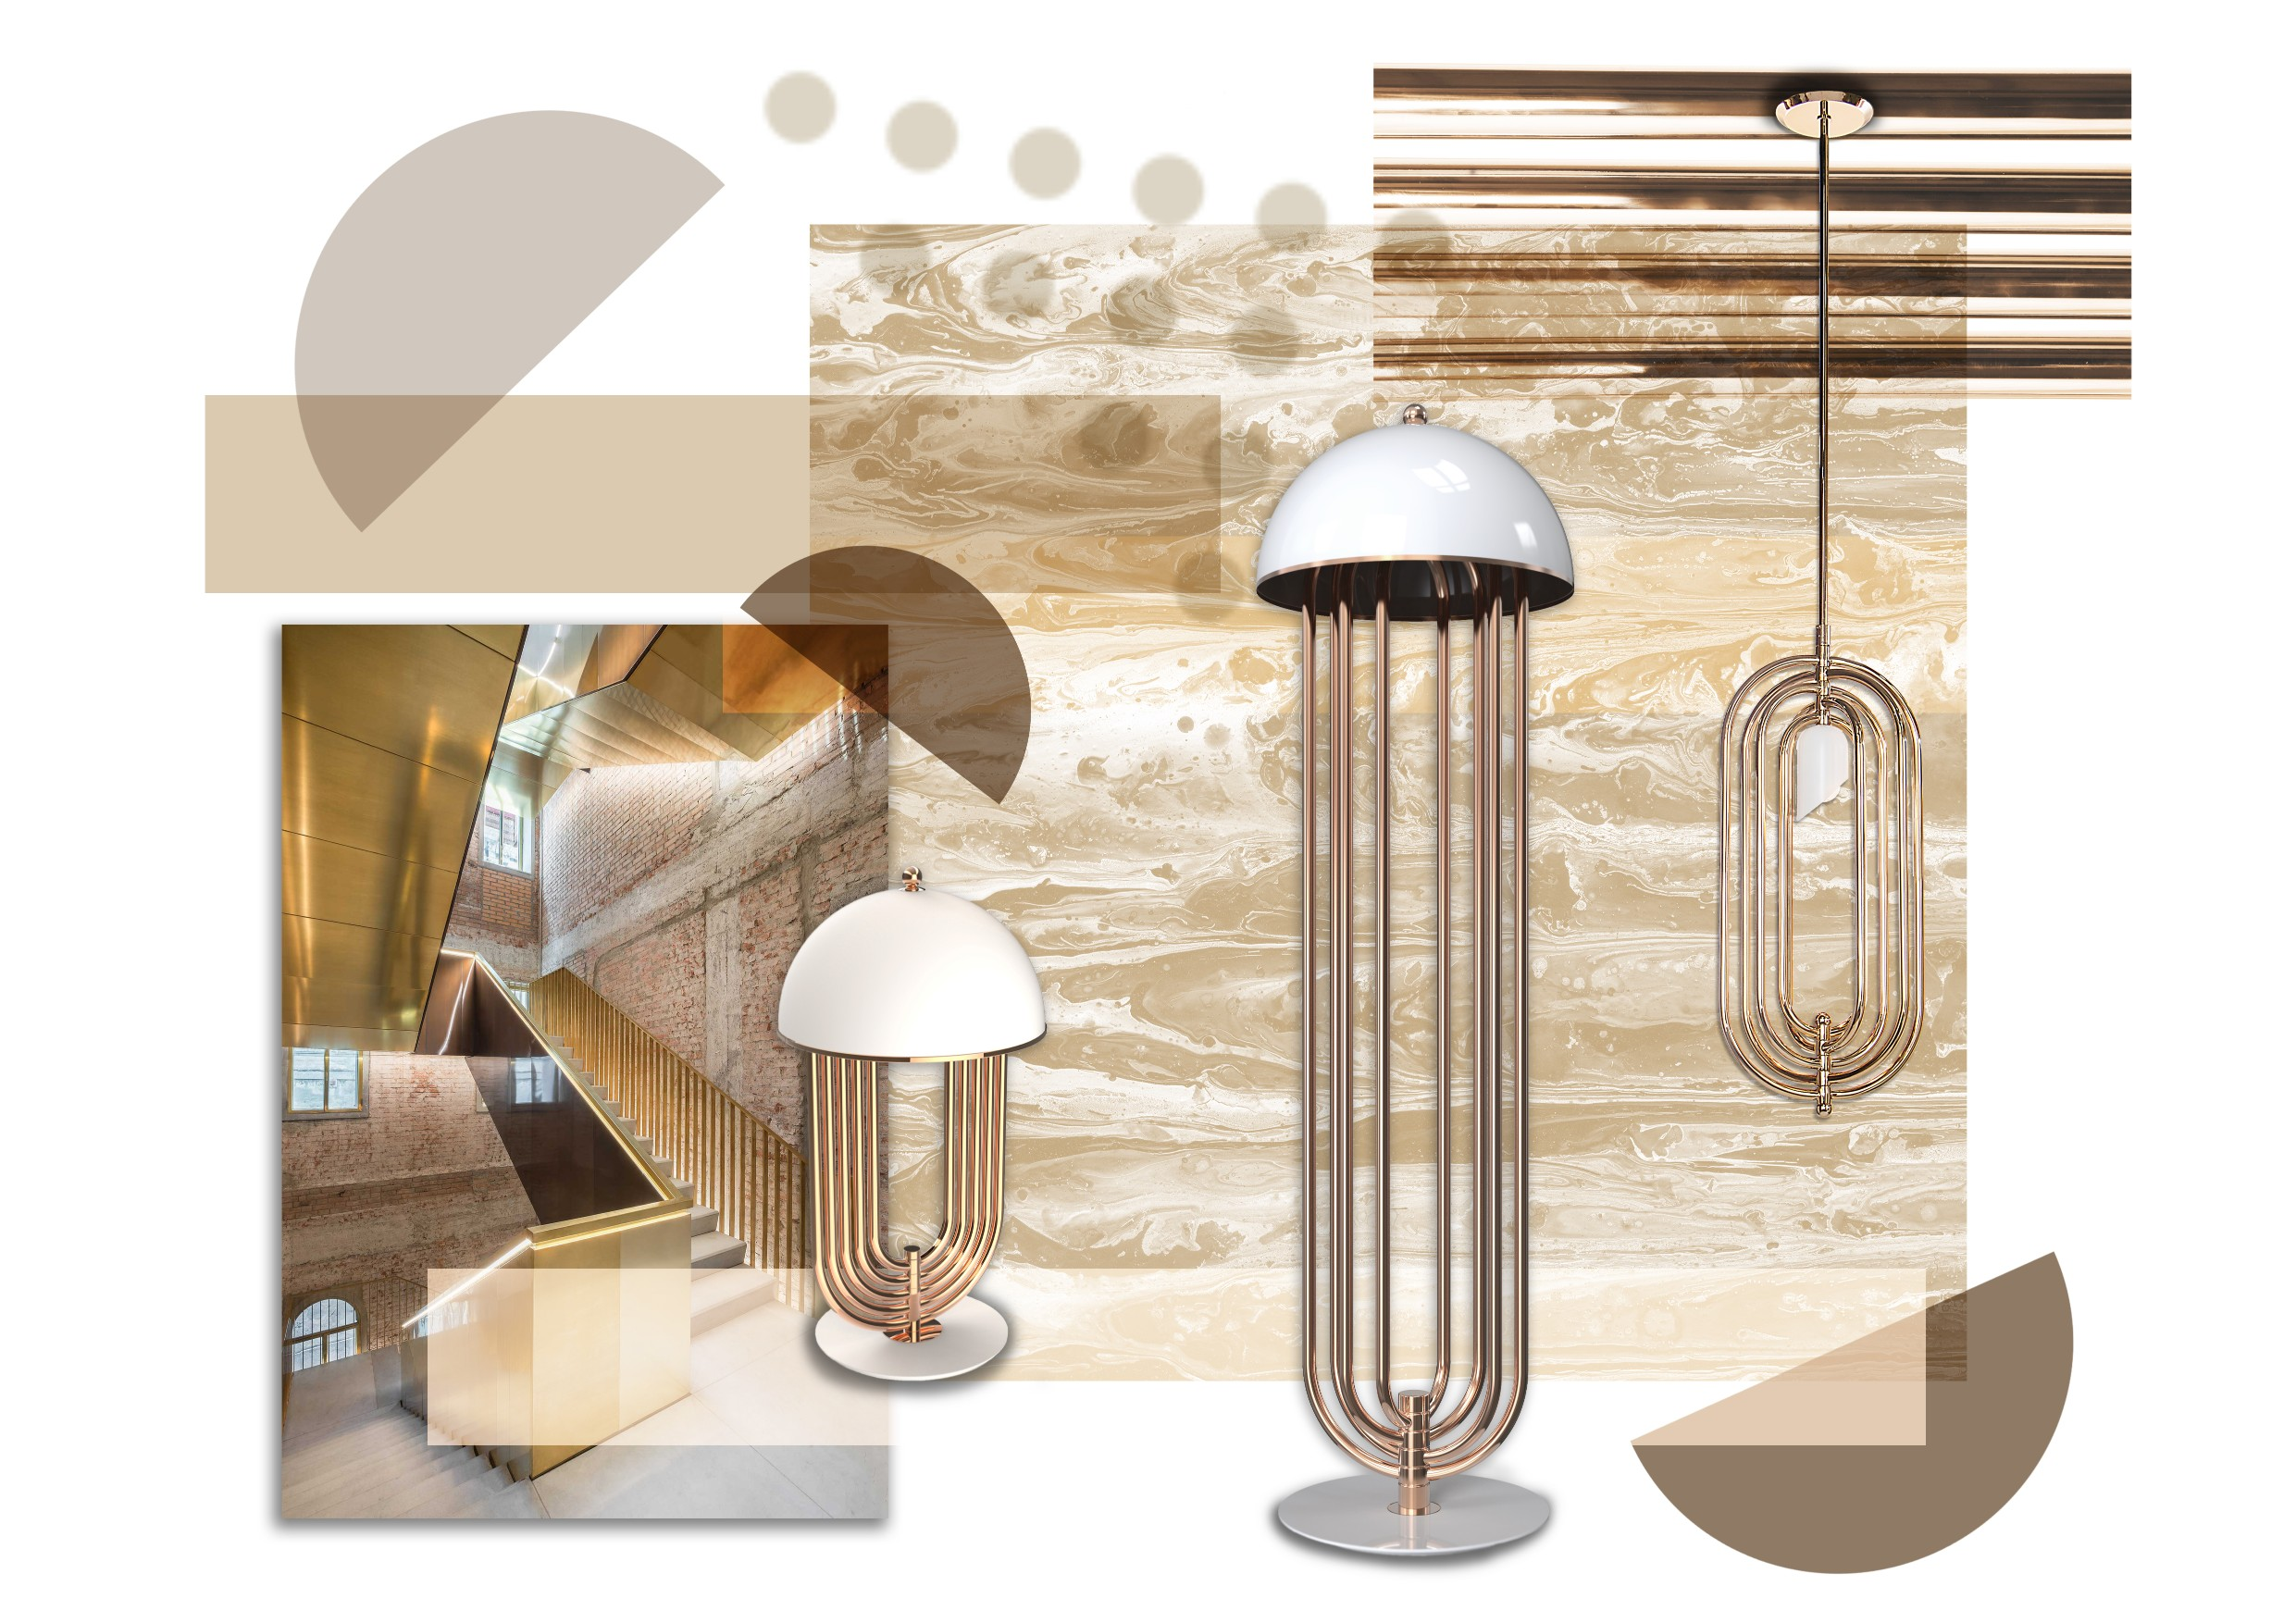 Summertime Mood Boards  Summertime mood boards Feel Inspired By These Summertime Mood Boards and Floor Lamps! Feel Inspired By These Mood Board and Floor Lamps 3